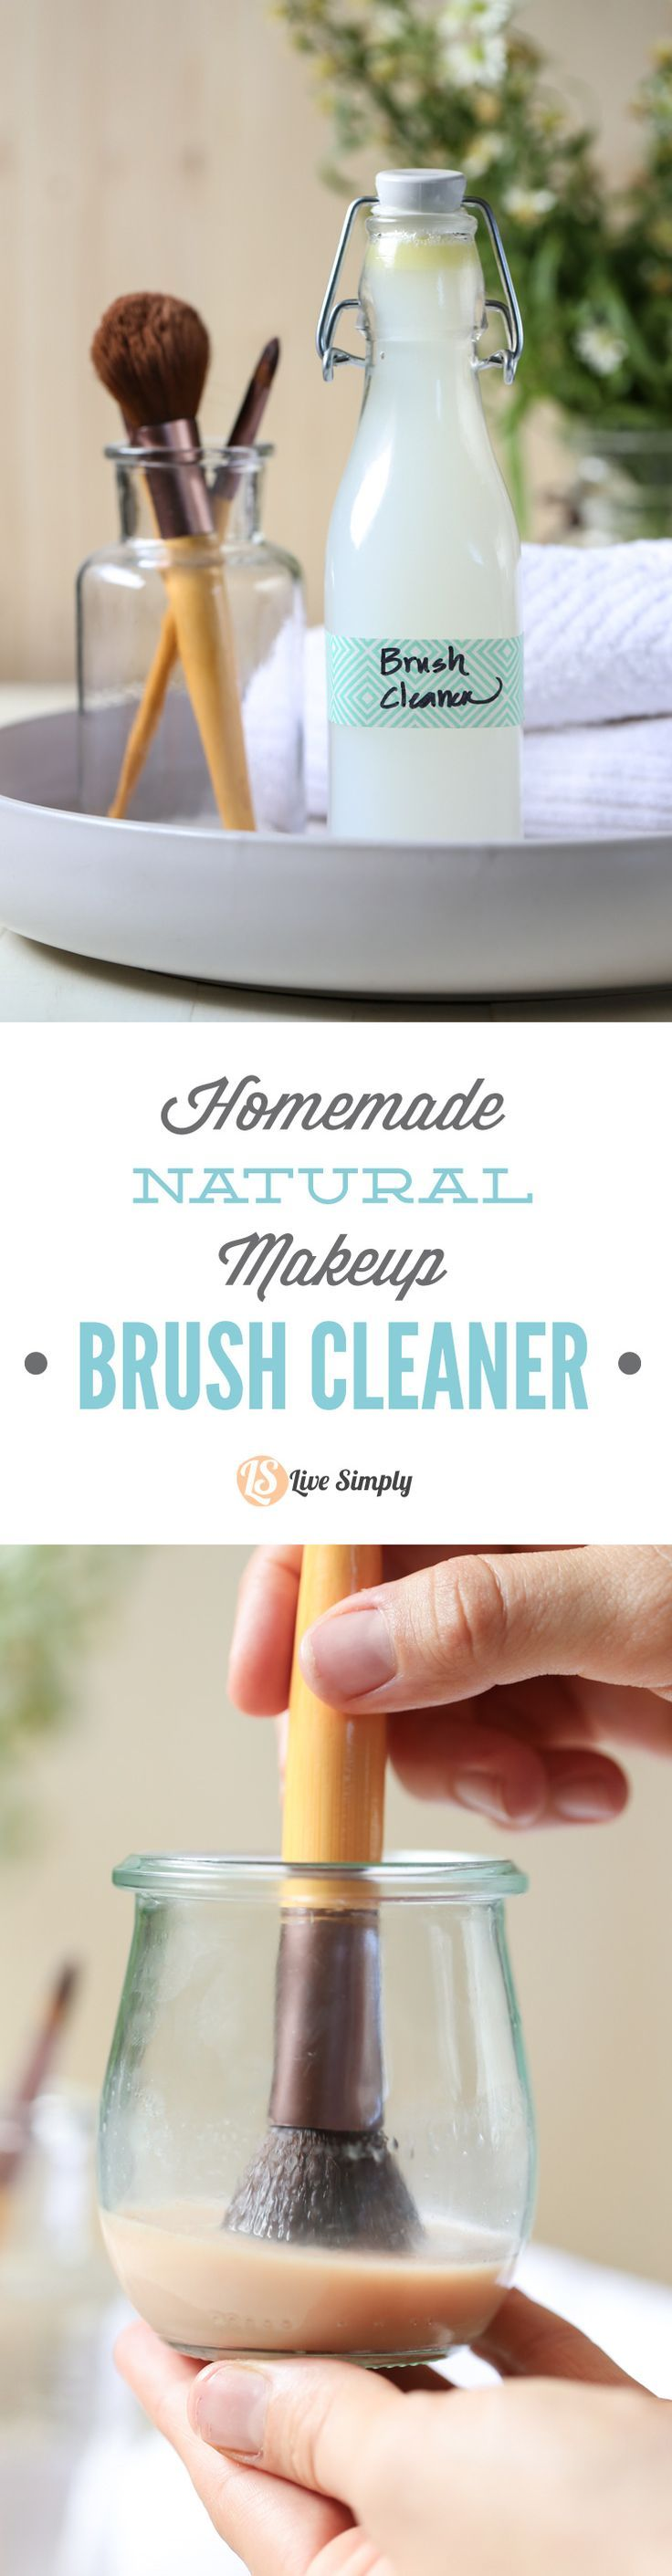 Homemade Natural Makeup Brush Cleaner Makeup brush